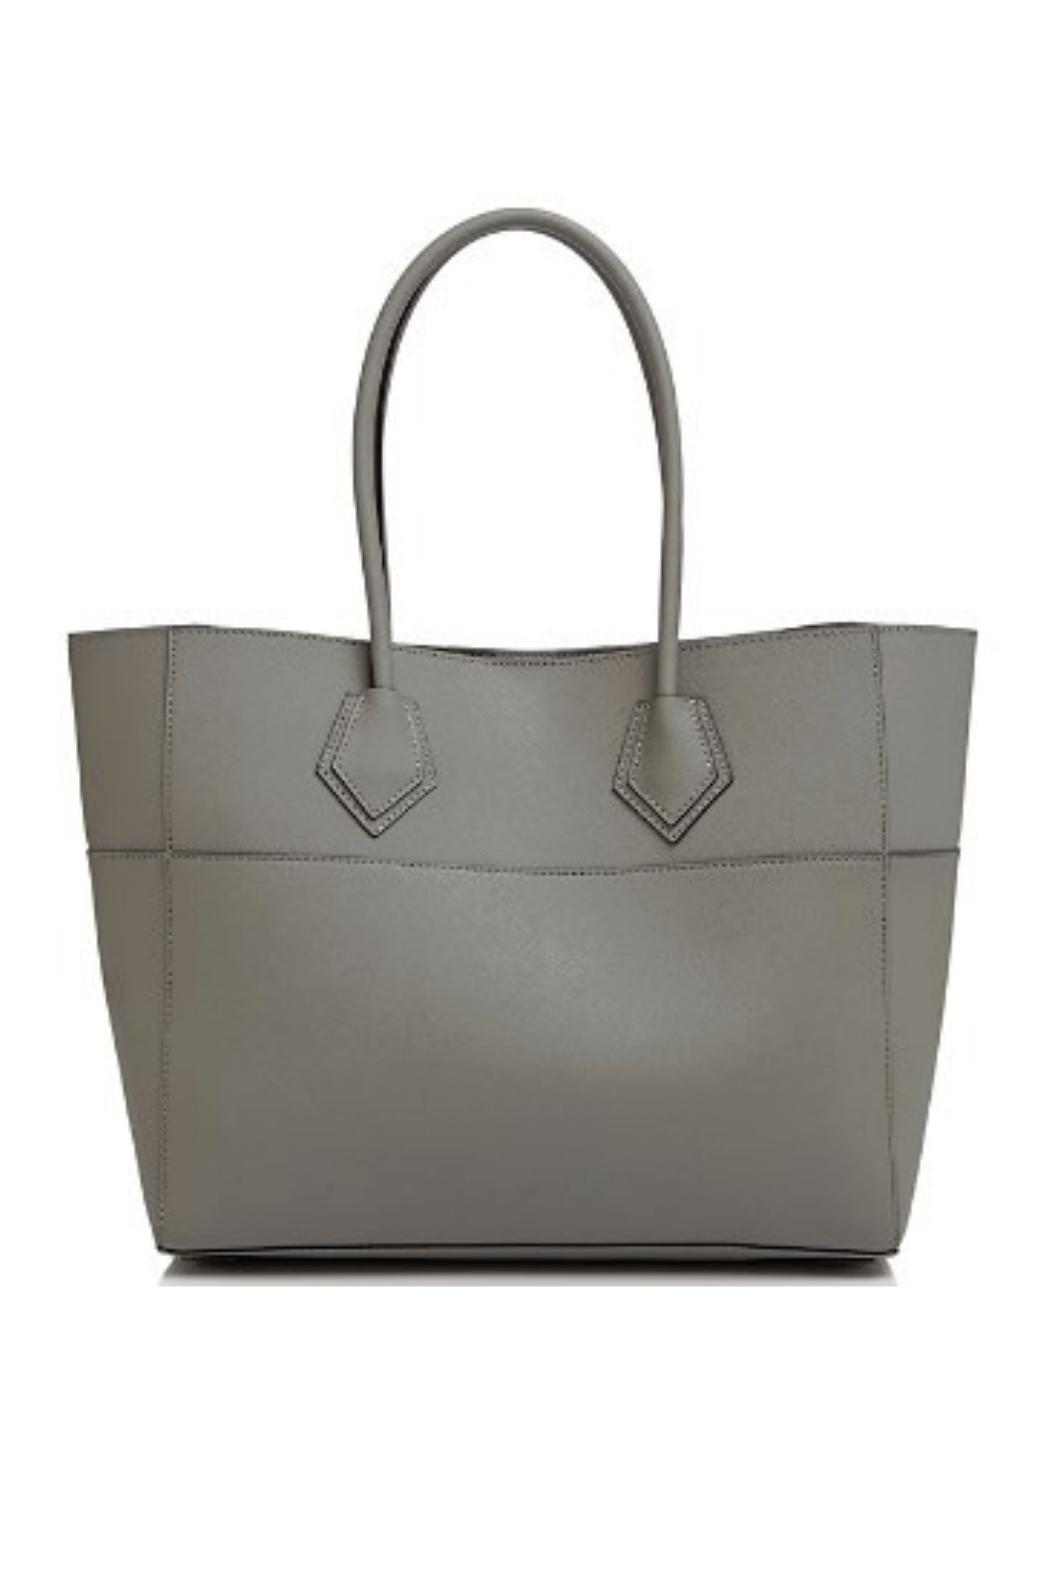 8d4b671cd01 Rebecca Minkoff Piper Tote from New Hampshire by Stiletto Shoes ...